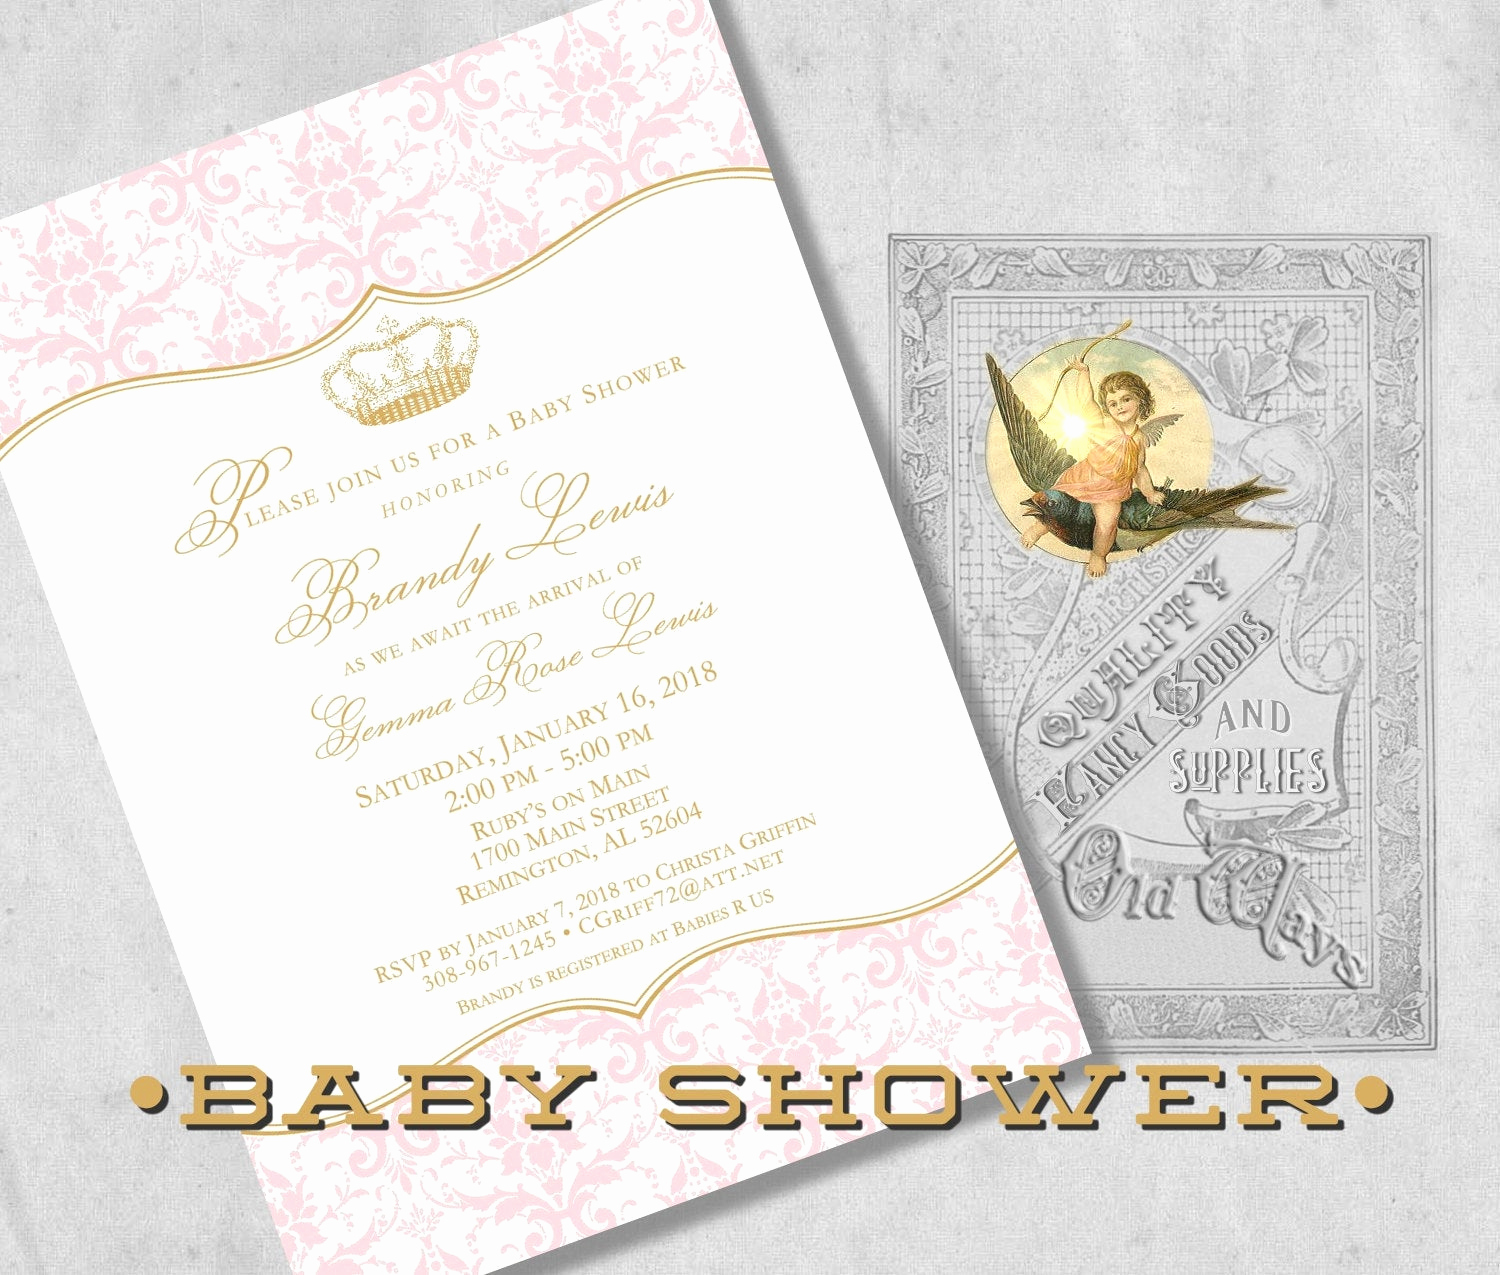 Princess Baby Shower Invitations Lovely Printed Royal Princess Baby Shower Invitations Elegant